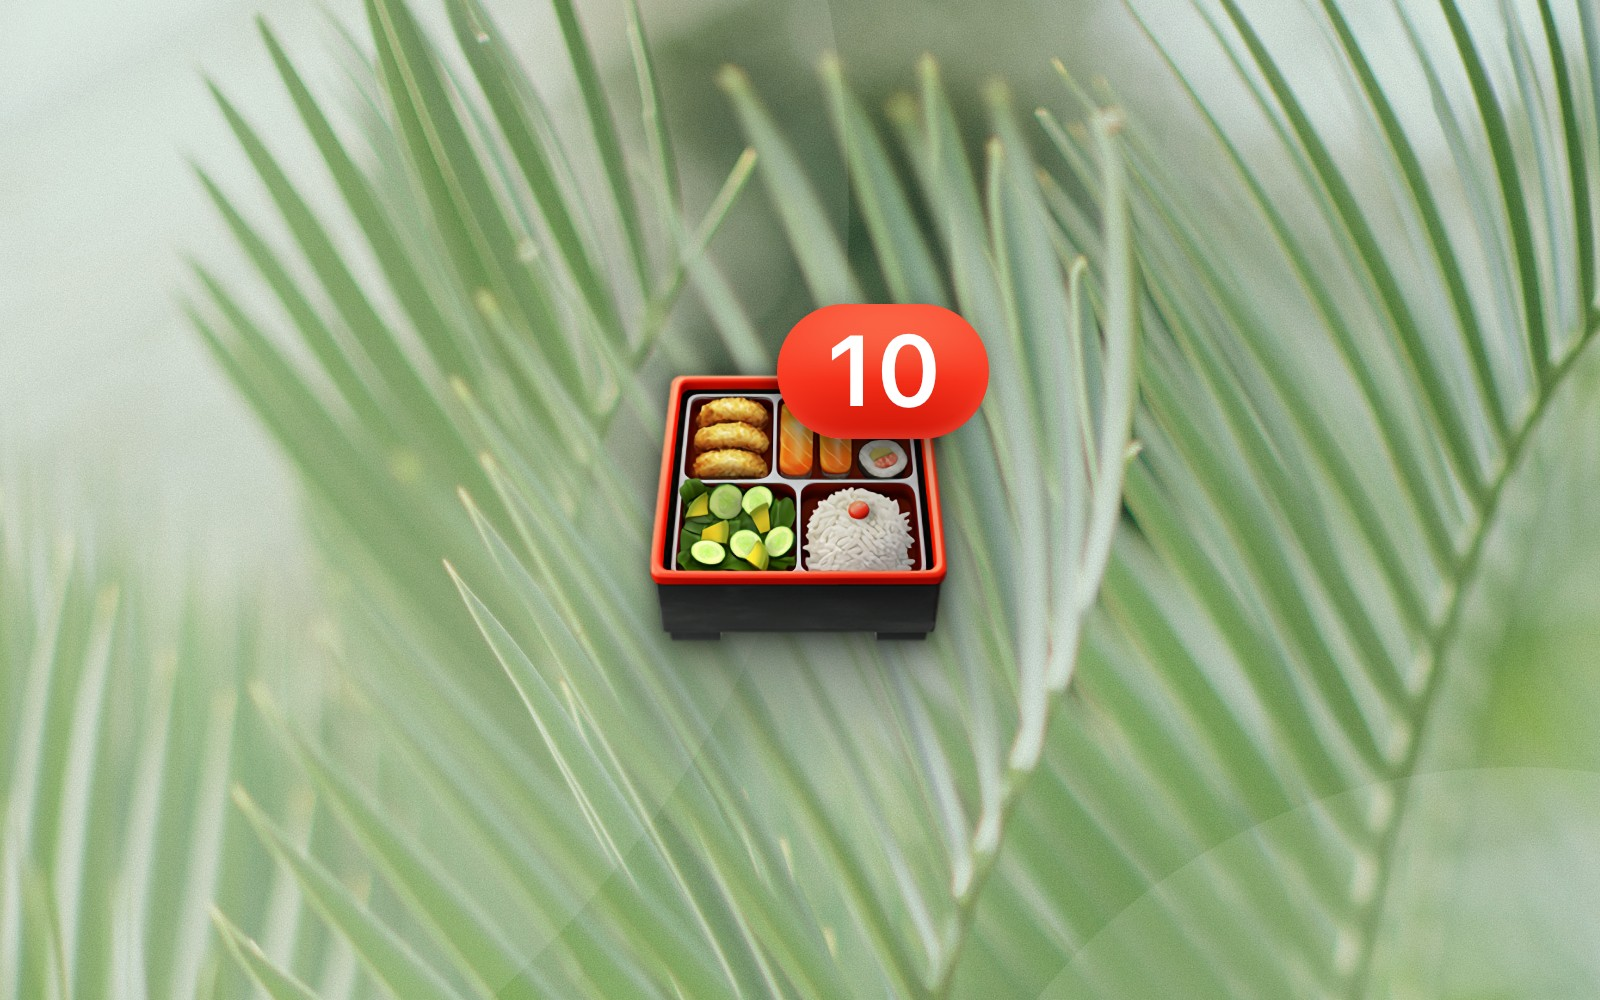 Bento box emoji with number 10 badge resting on a palm frond background